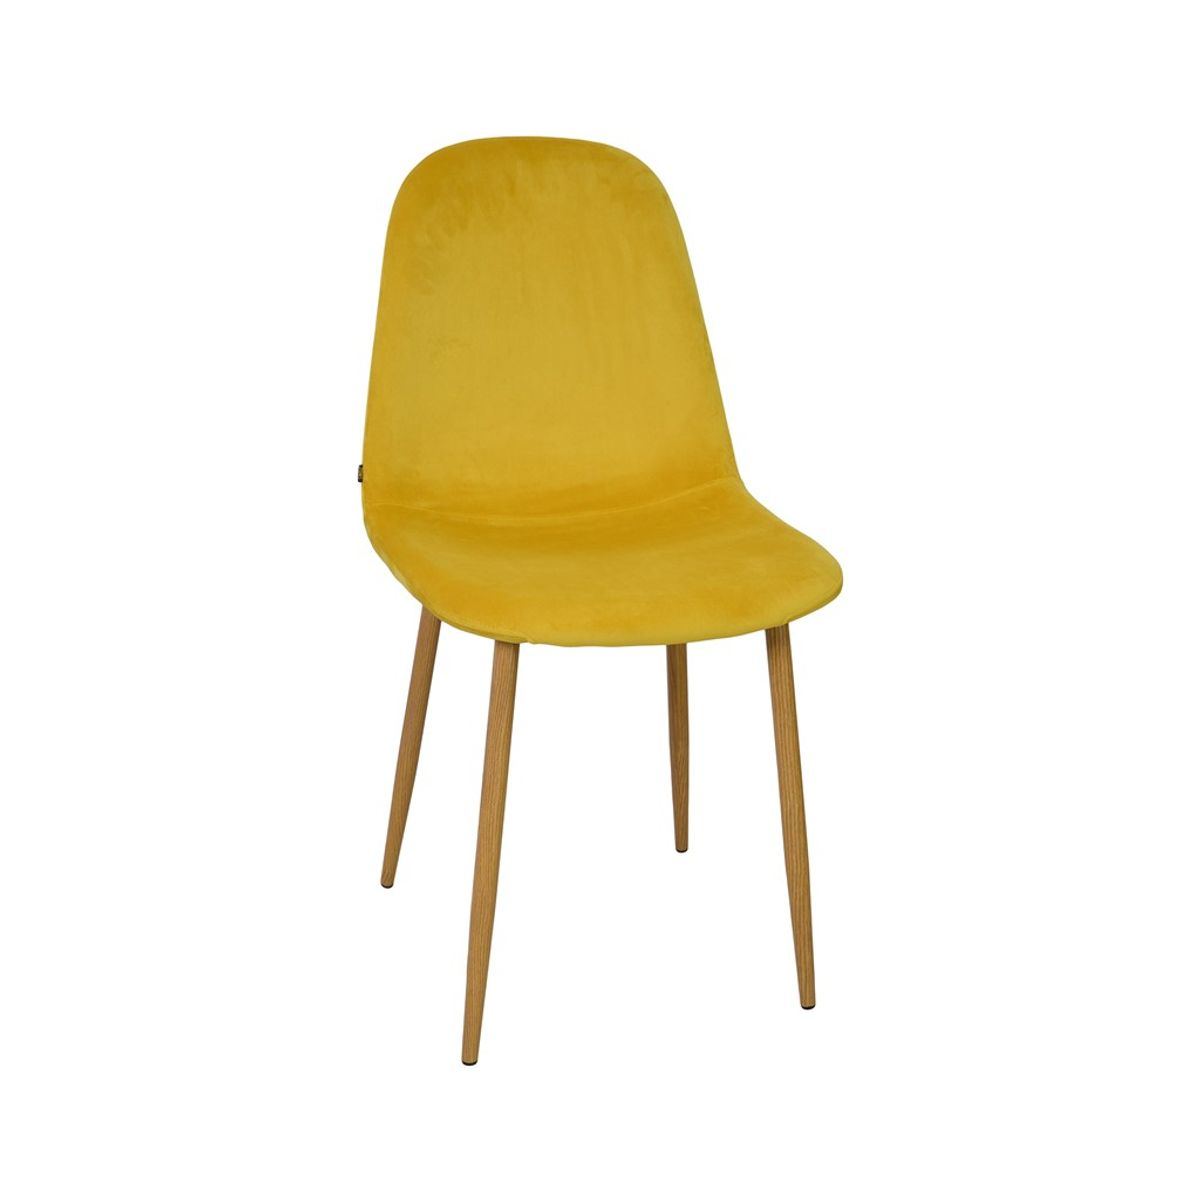 Chaise velours jaune moutarde Stockholm